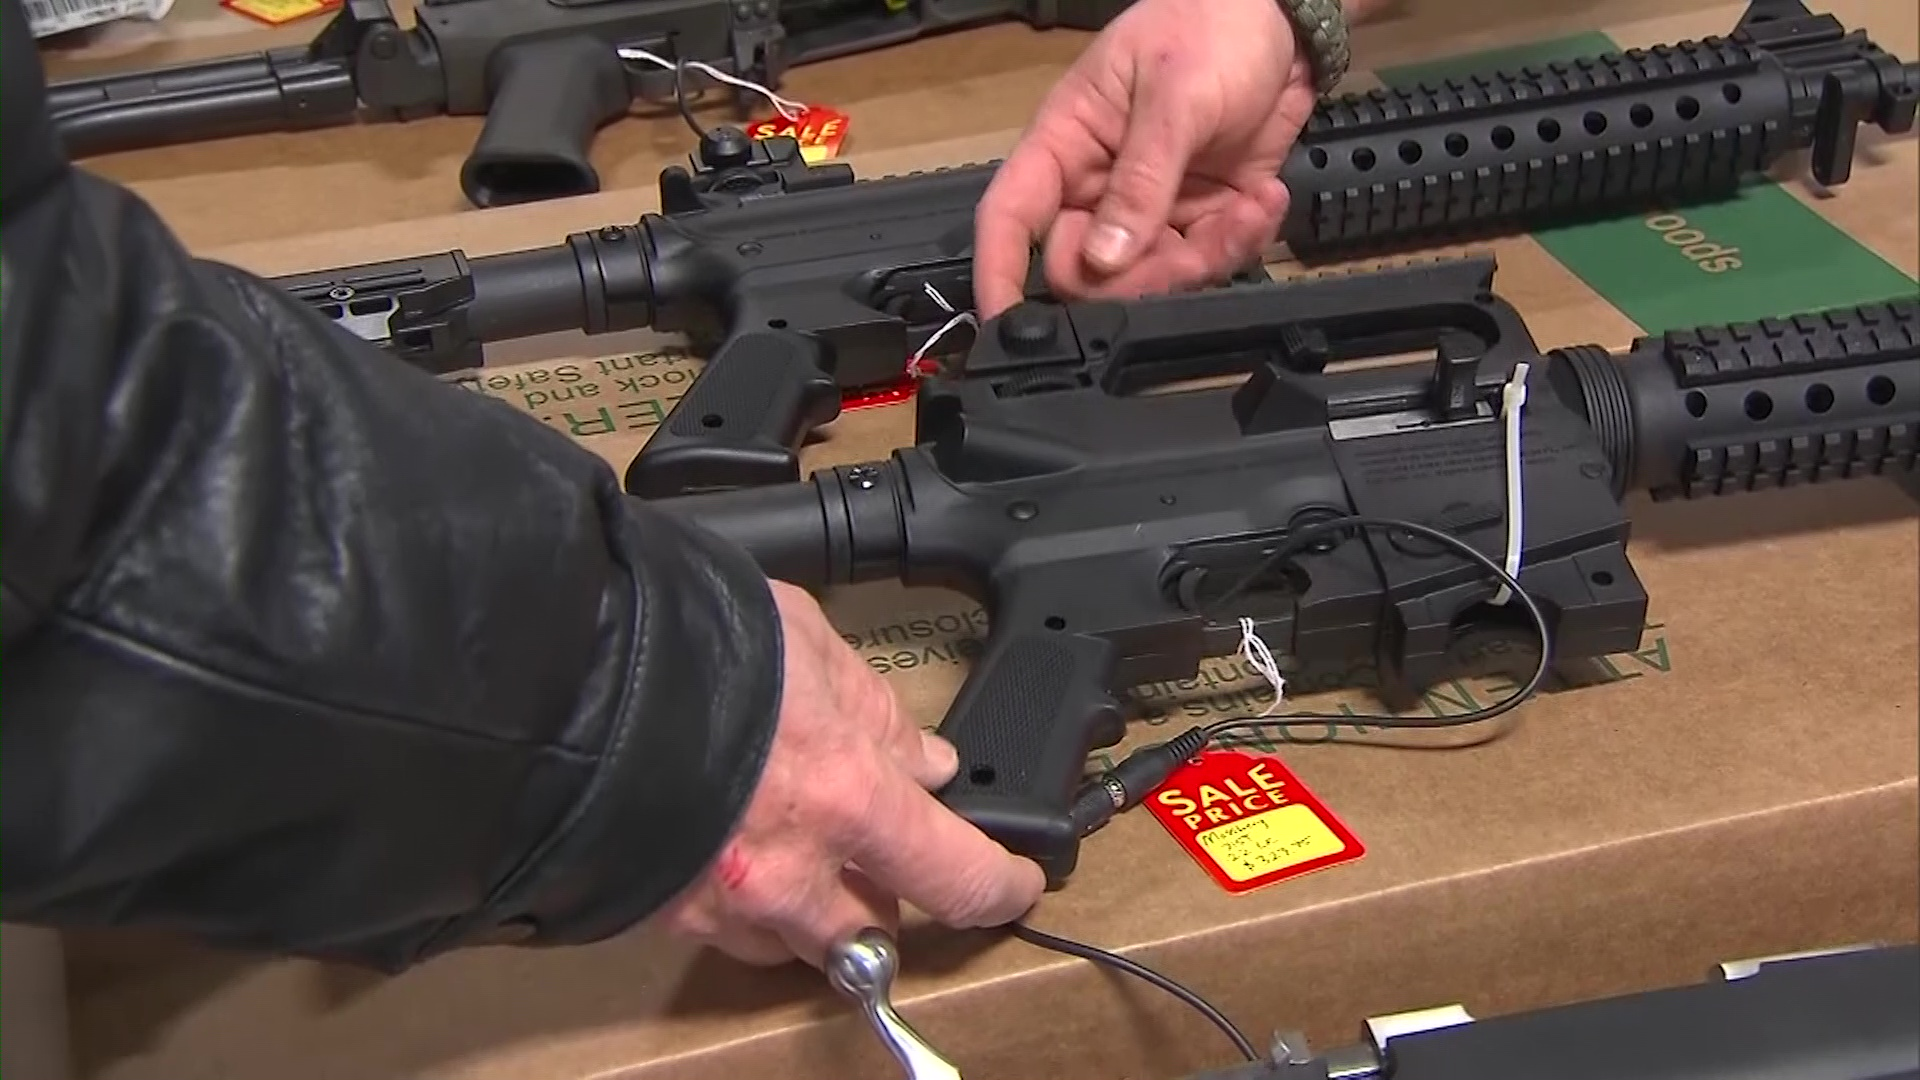 Westerville police continue investigating gun shop robbery